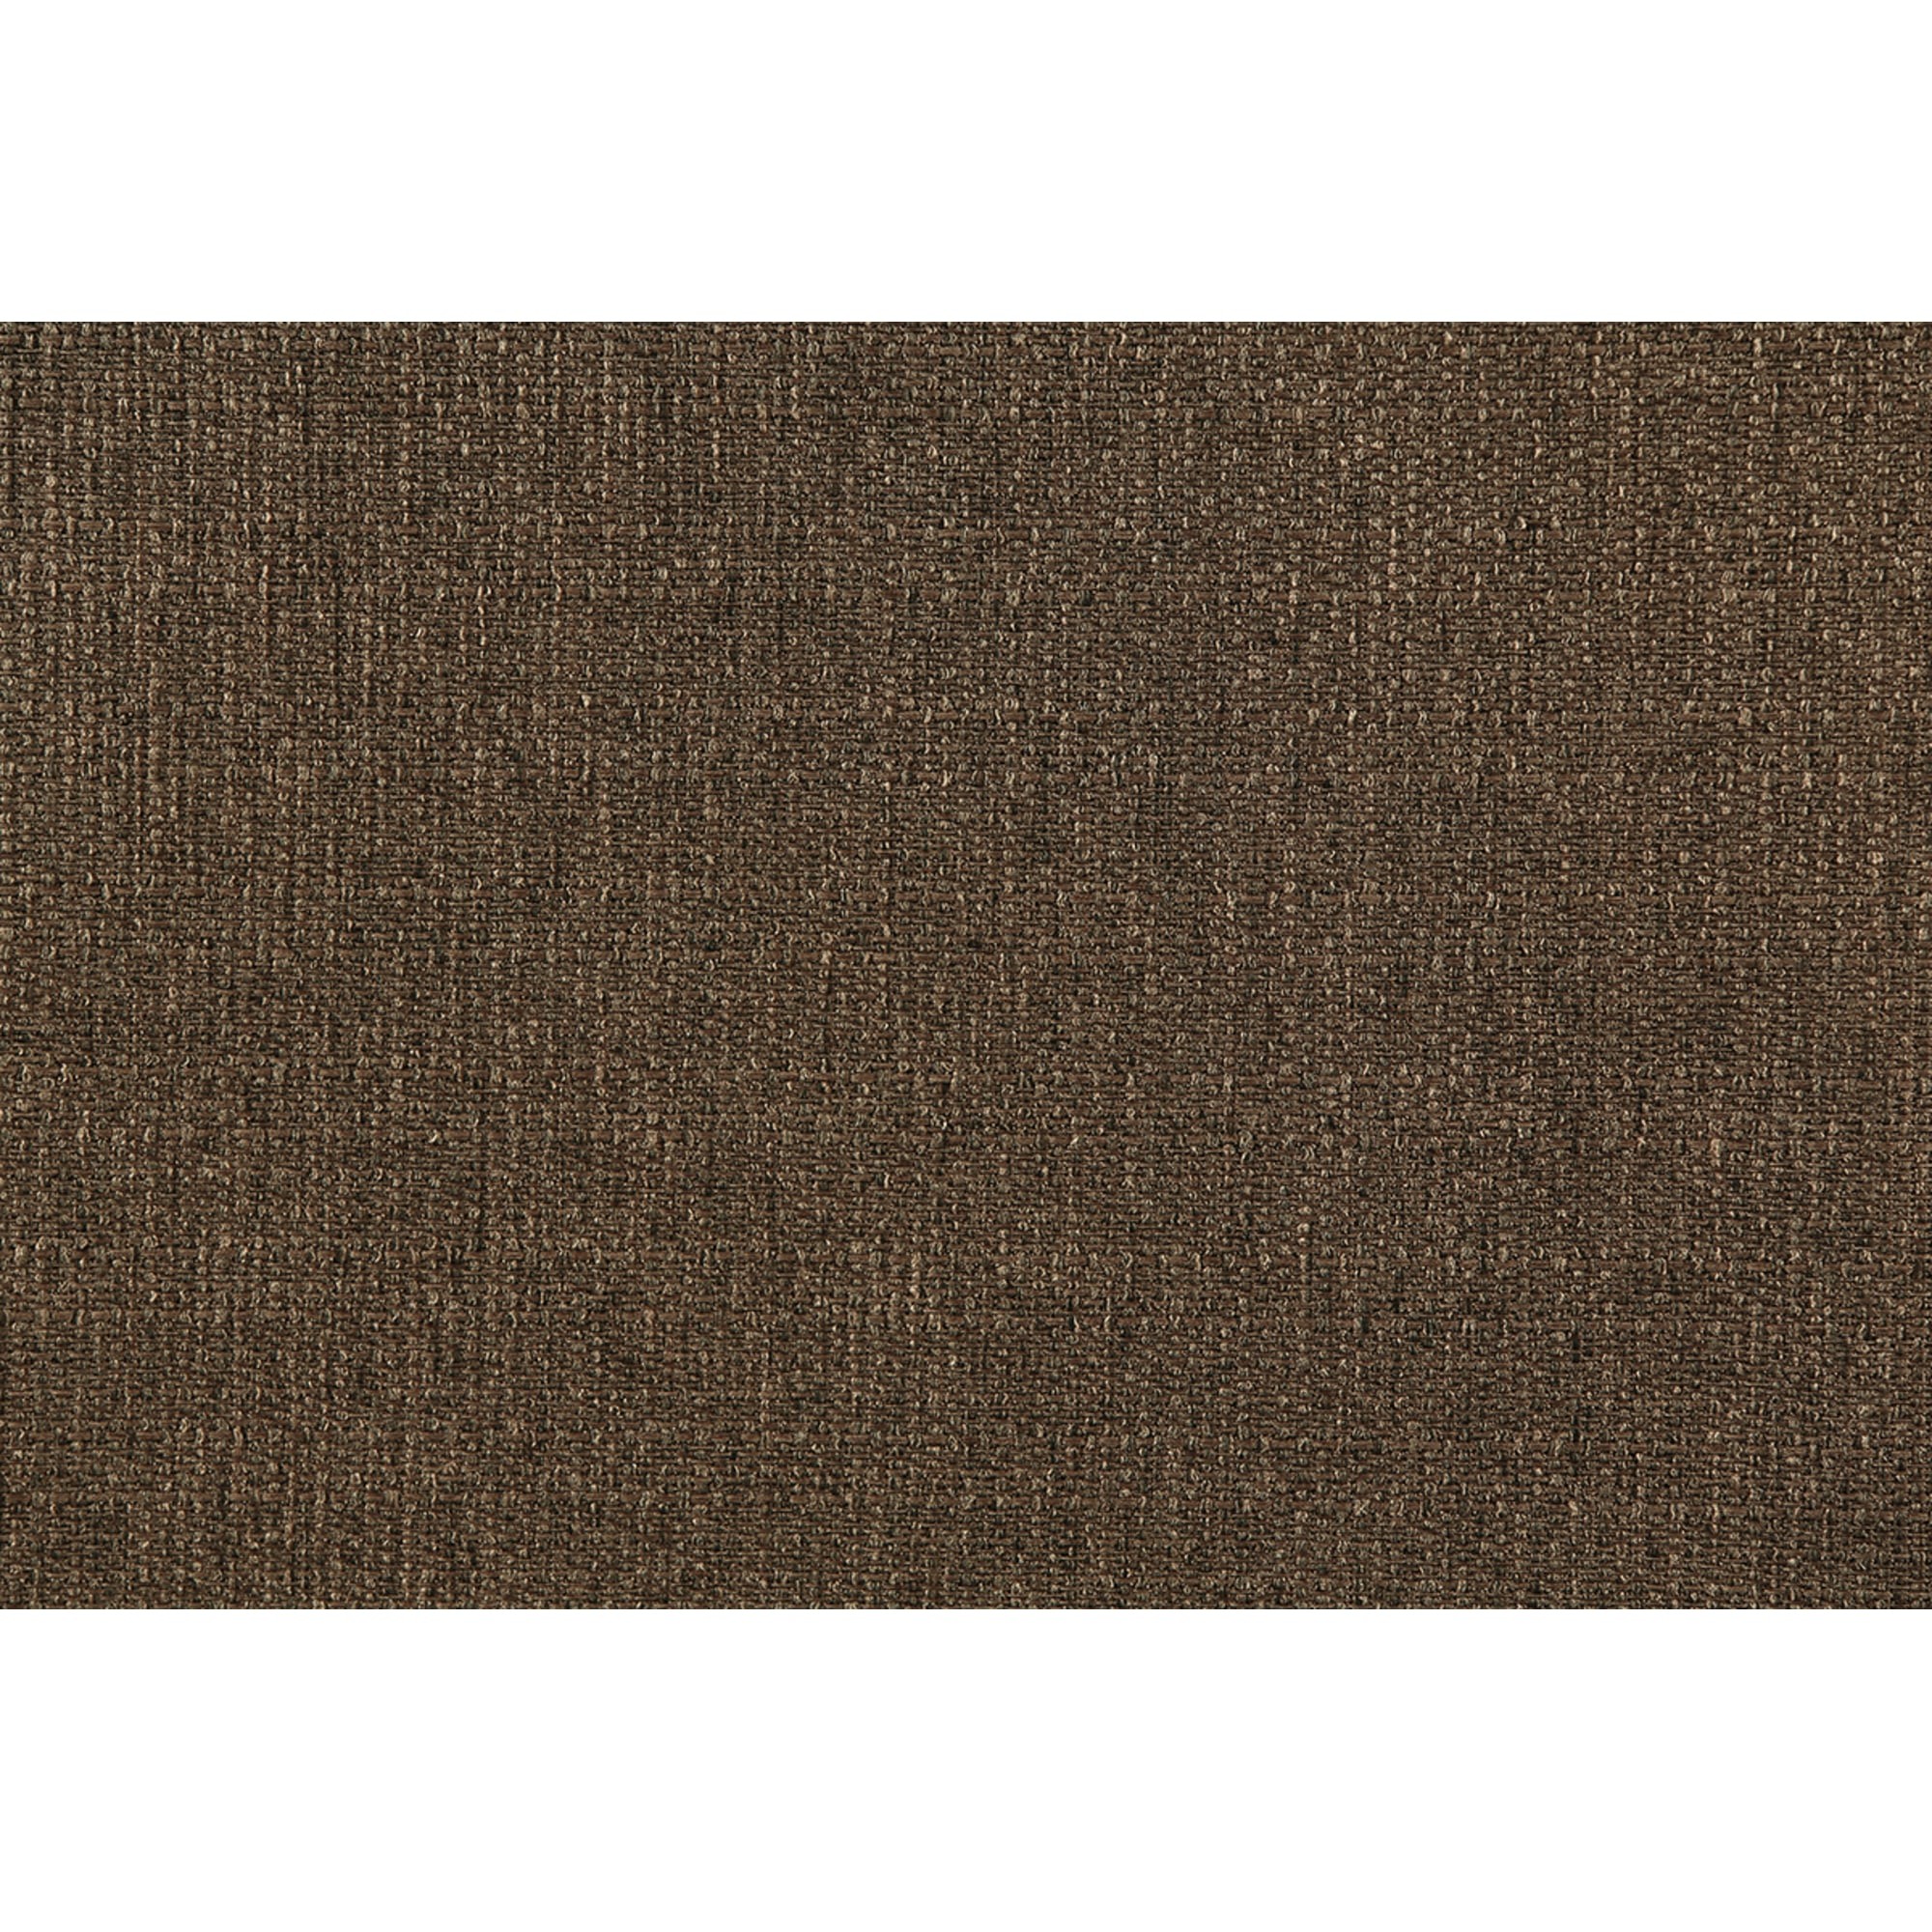 Image for 1536-072 Dash Mocha from Hekman Official Website